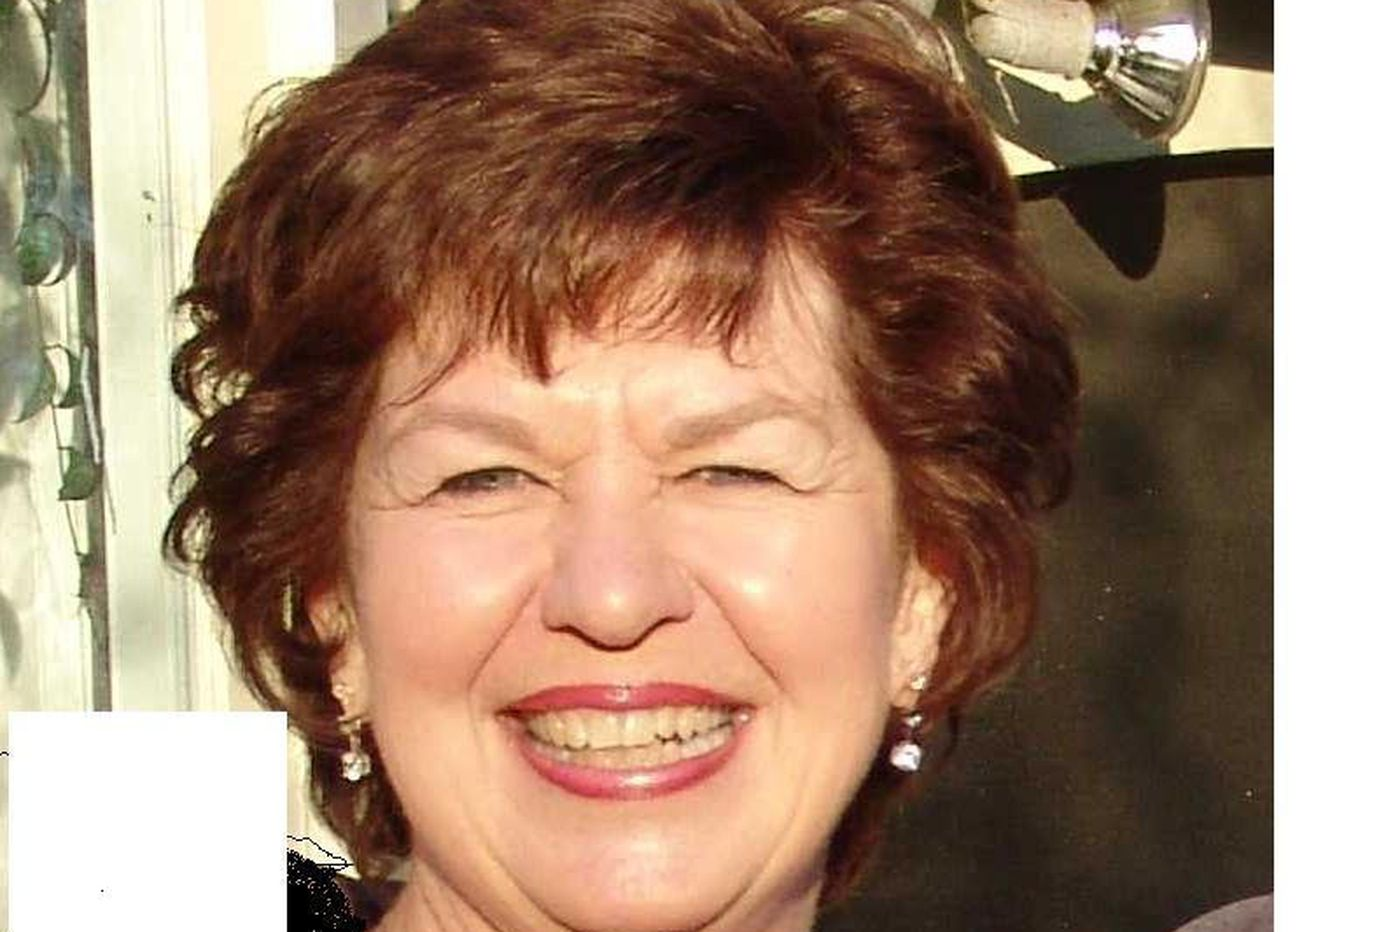 Patricia Weeks, retired licensing executive and v.p. at Fox Chase Cancer Center, dies at 75